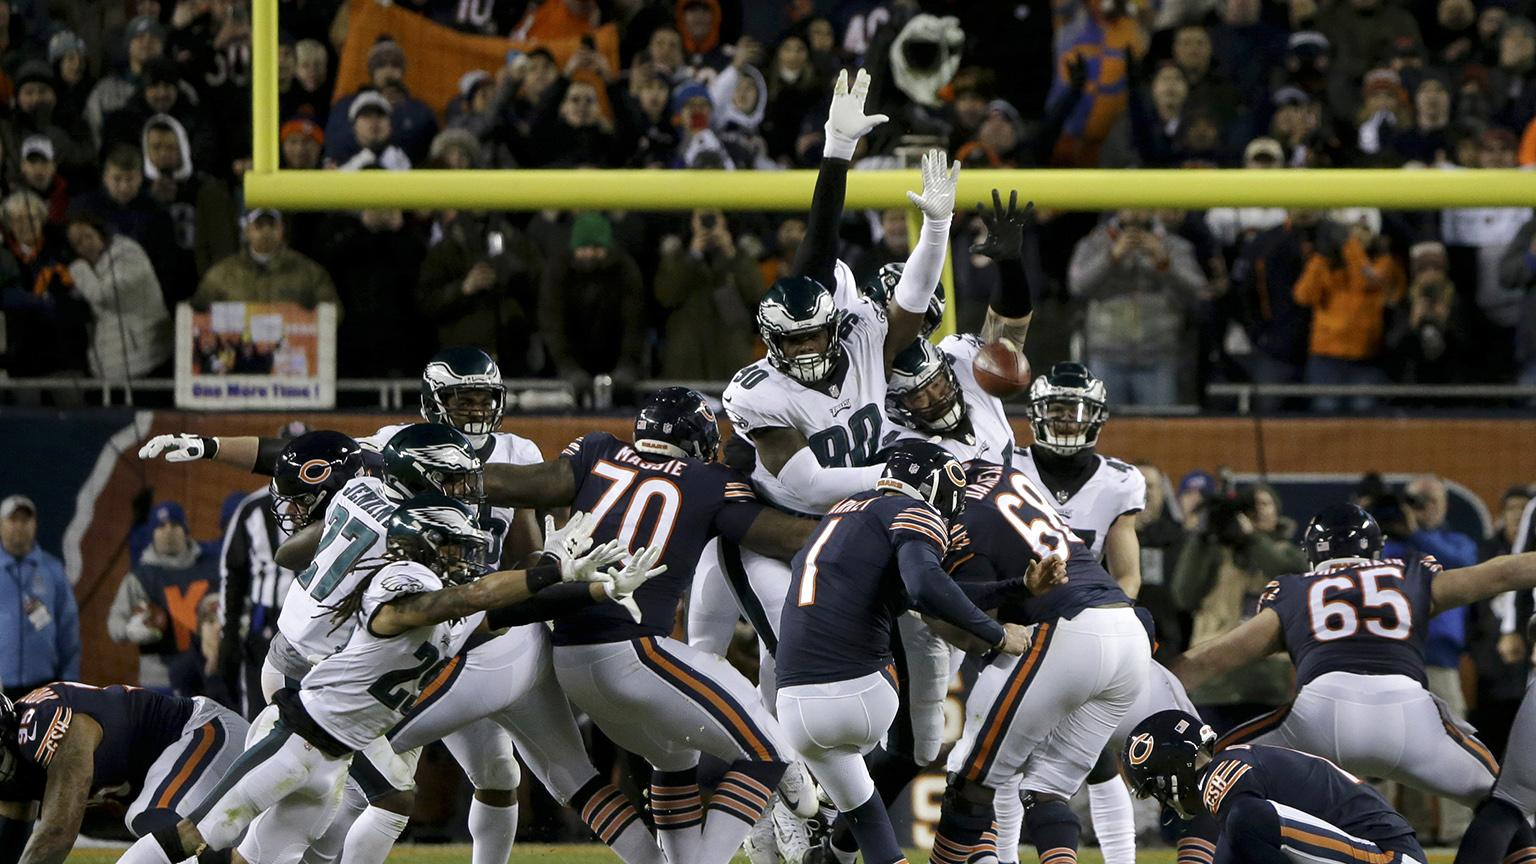 Chicago Bears kicker Cody Parkey (1) kicks and misses a field goal during the second half of an NFL wild-card playoff football game against the Philadelphia Eagles on Sunday, Jan. 6, 2019. The Eagles won 16-15. (AP Photo / David Banks)